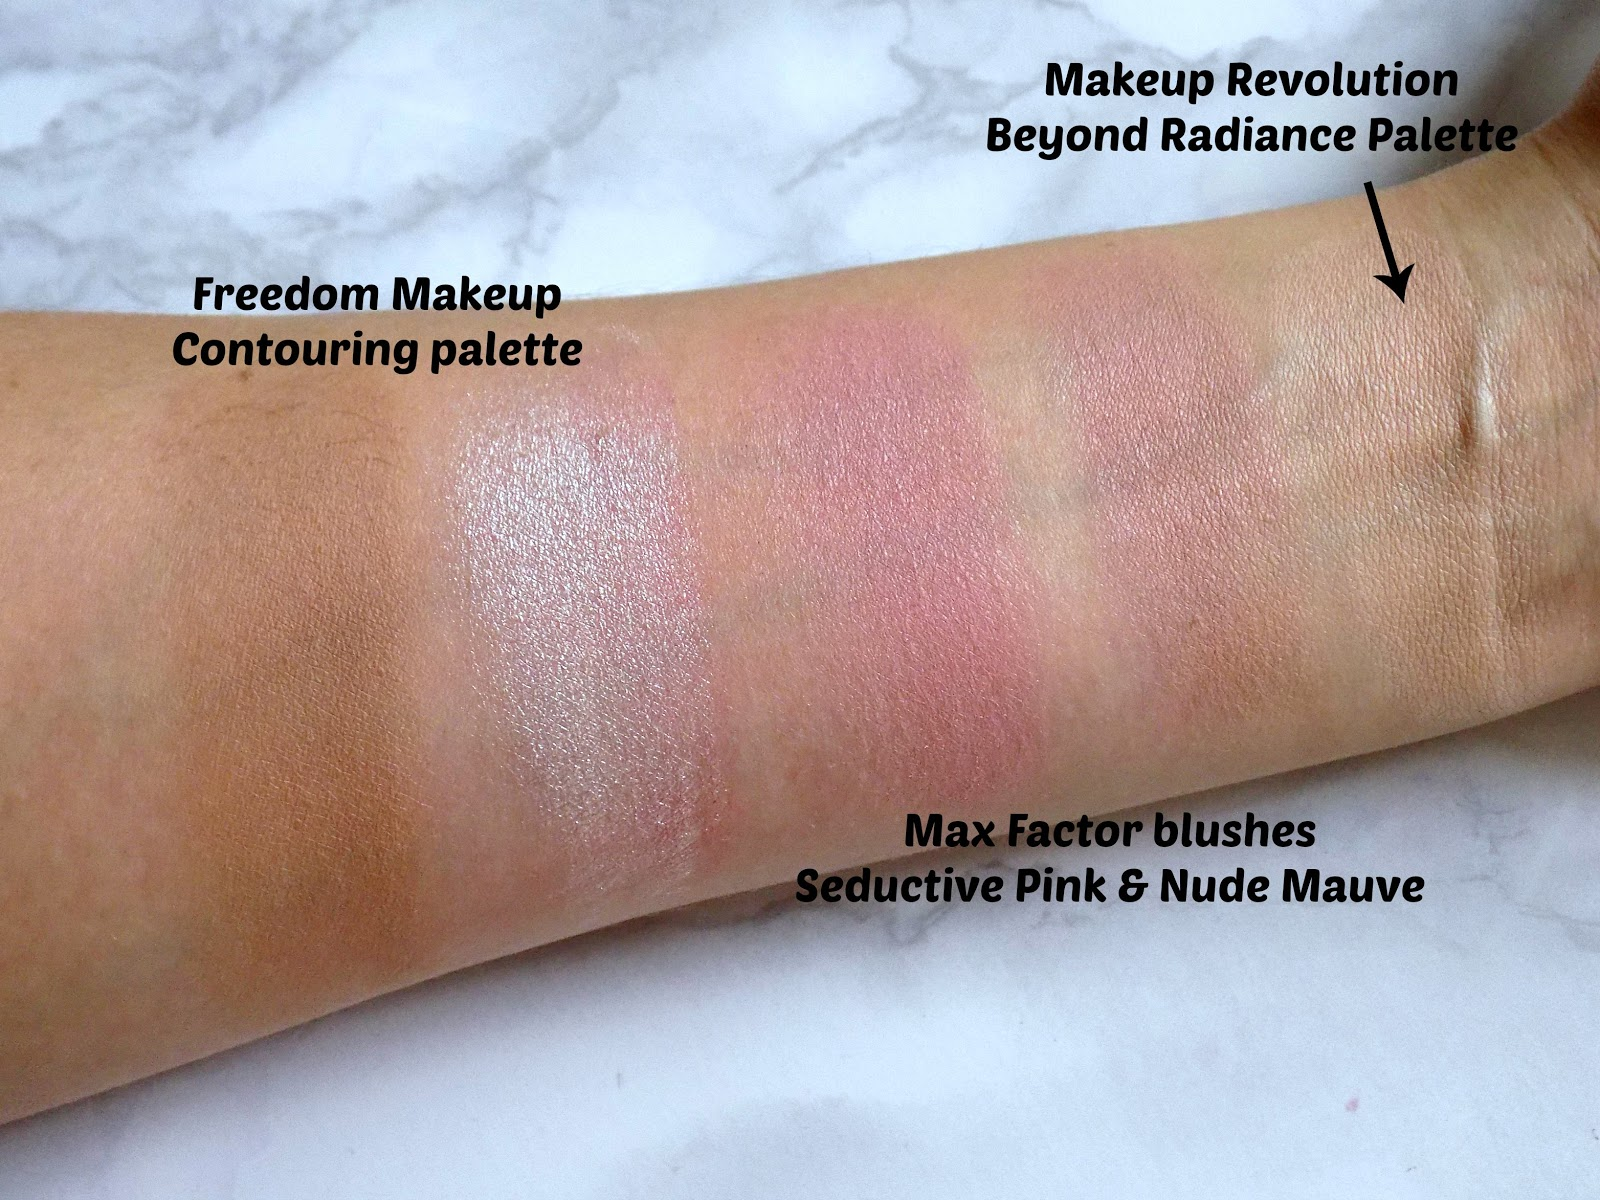 Freedom Makeup Pro Strobe palette swatches